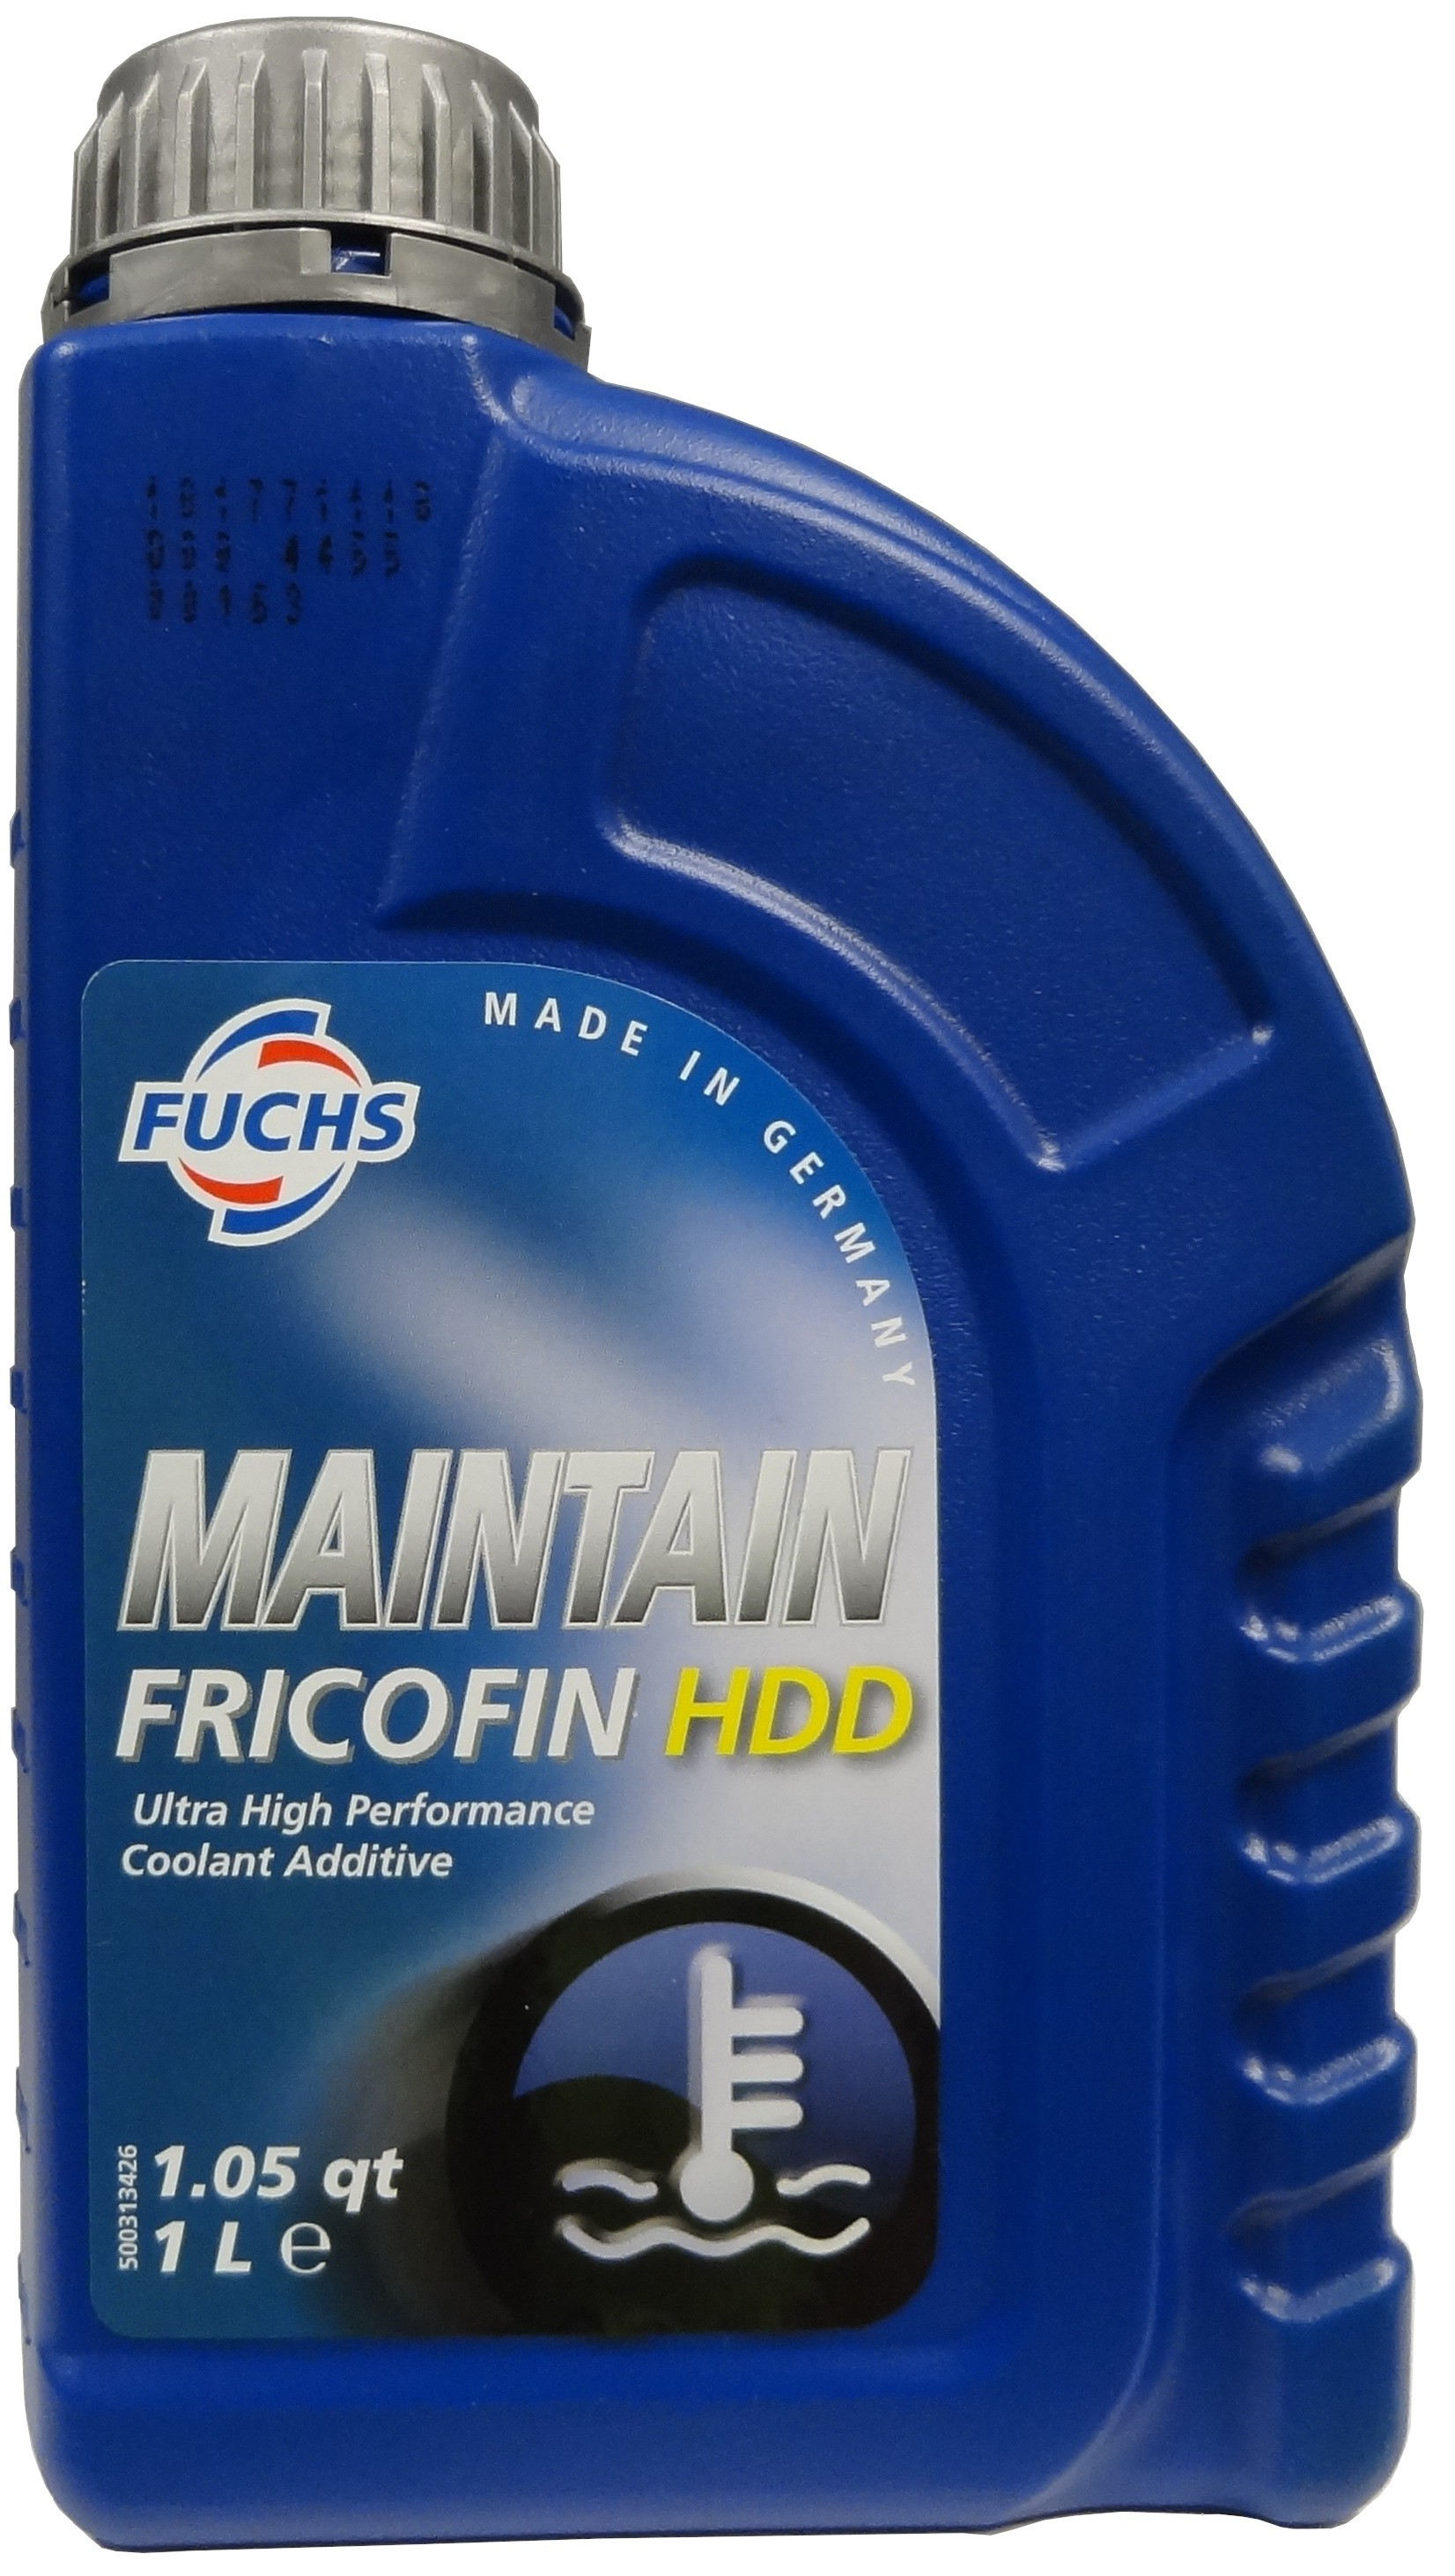 FUCHS MAINTAIN FRICOFIN HDD 1L